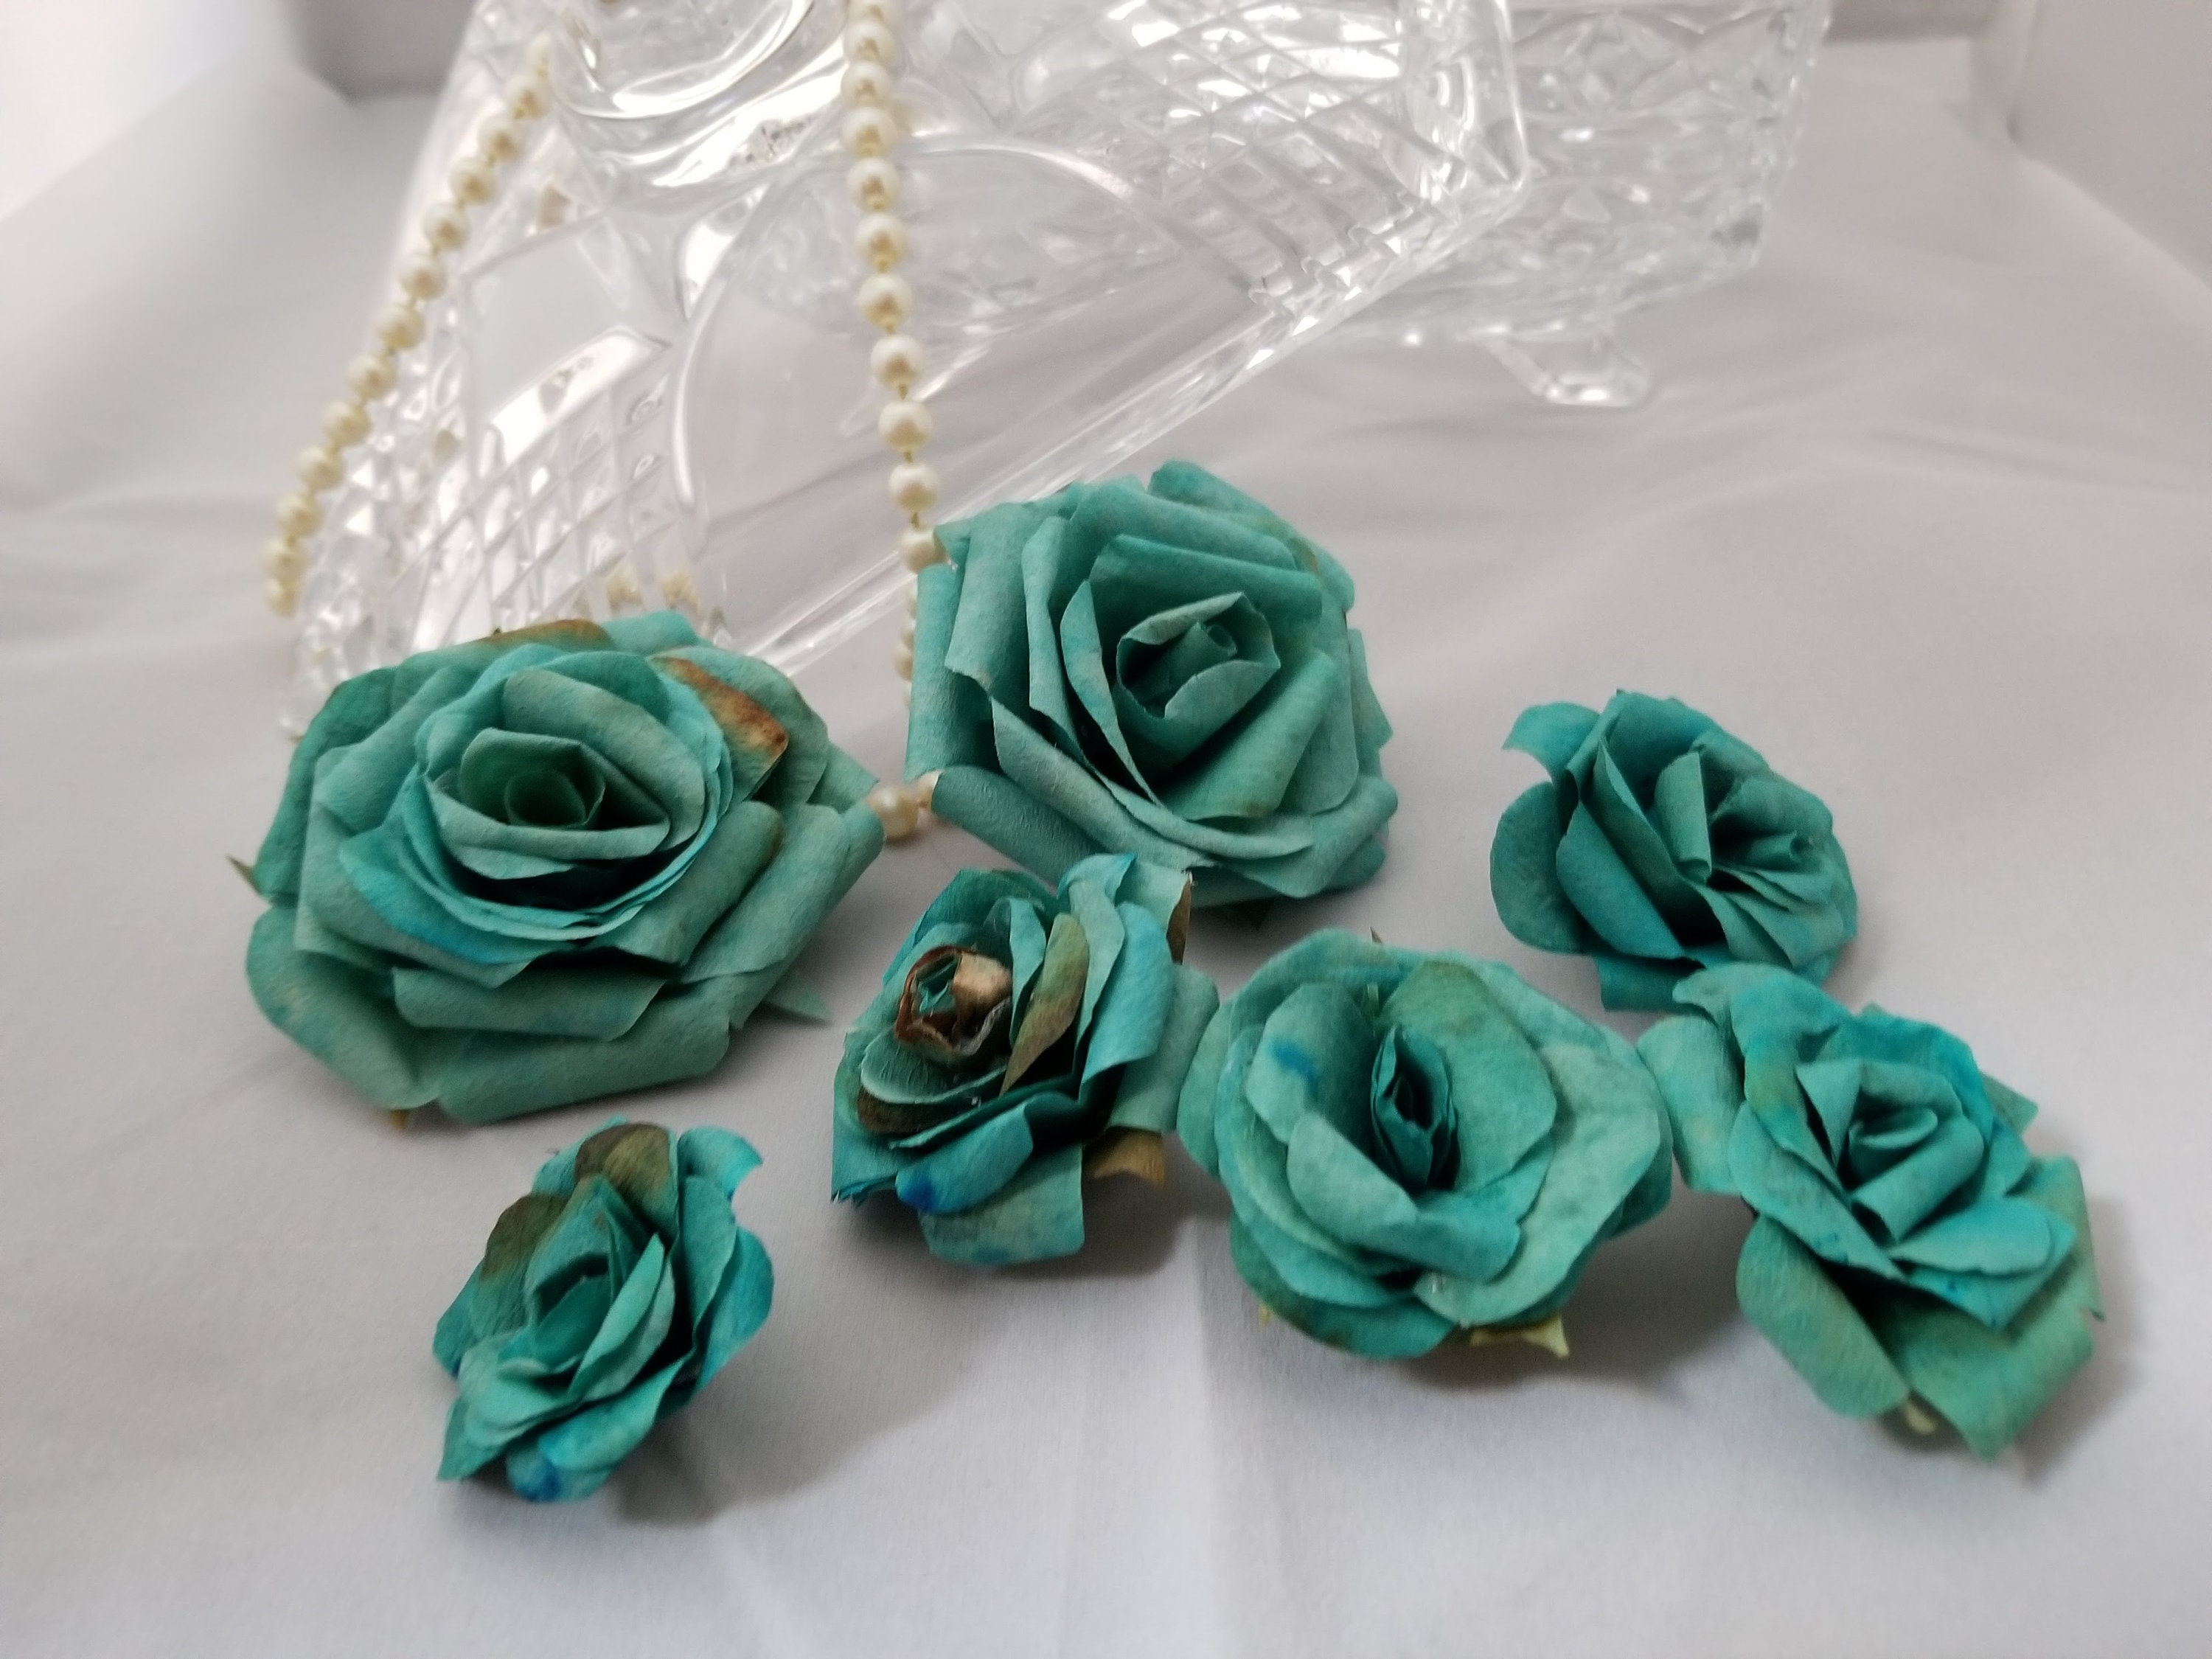 Free Shipping Mini Paper Flower Made In Recycled Paper Etsy